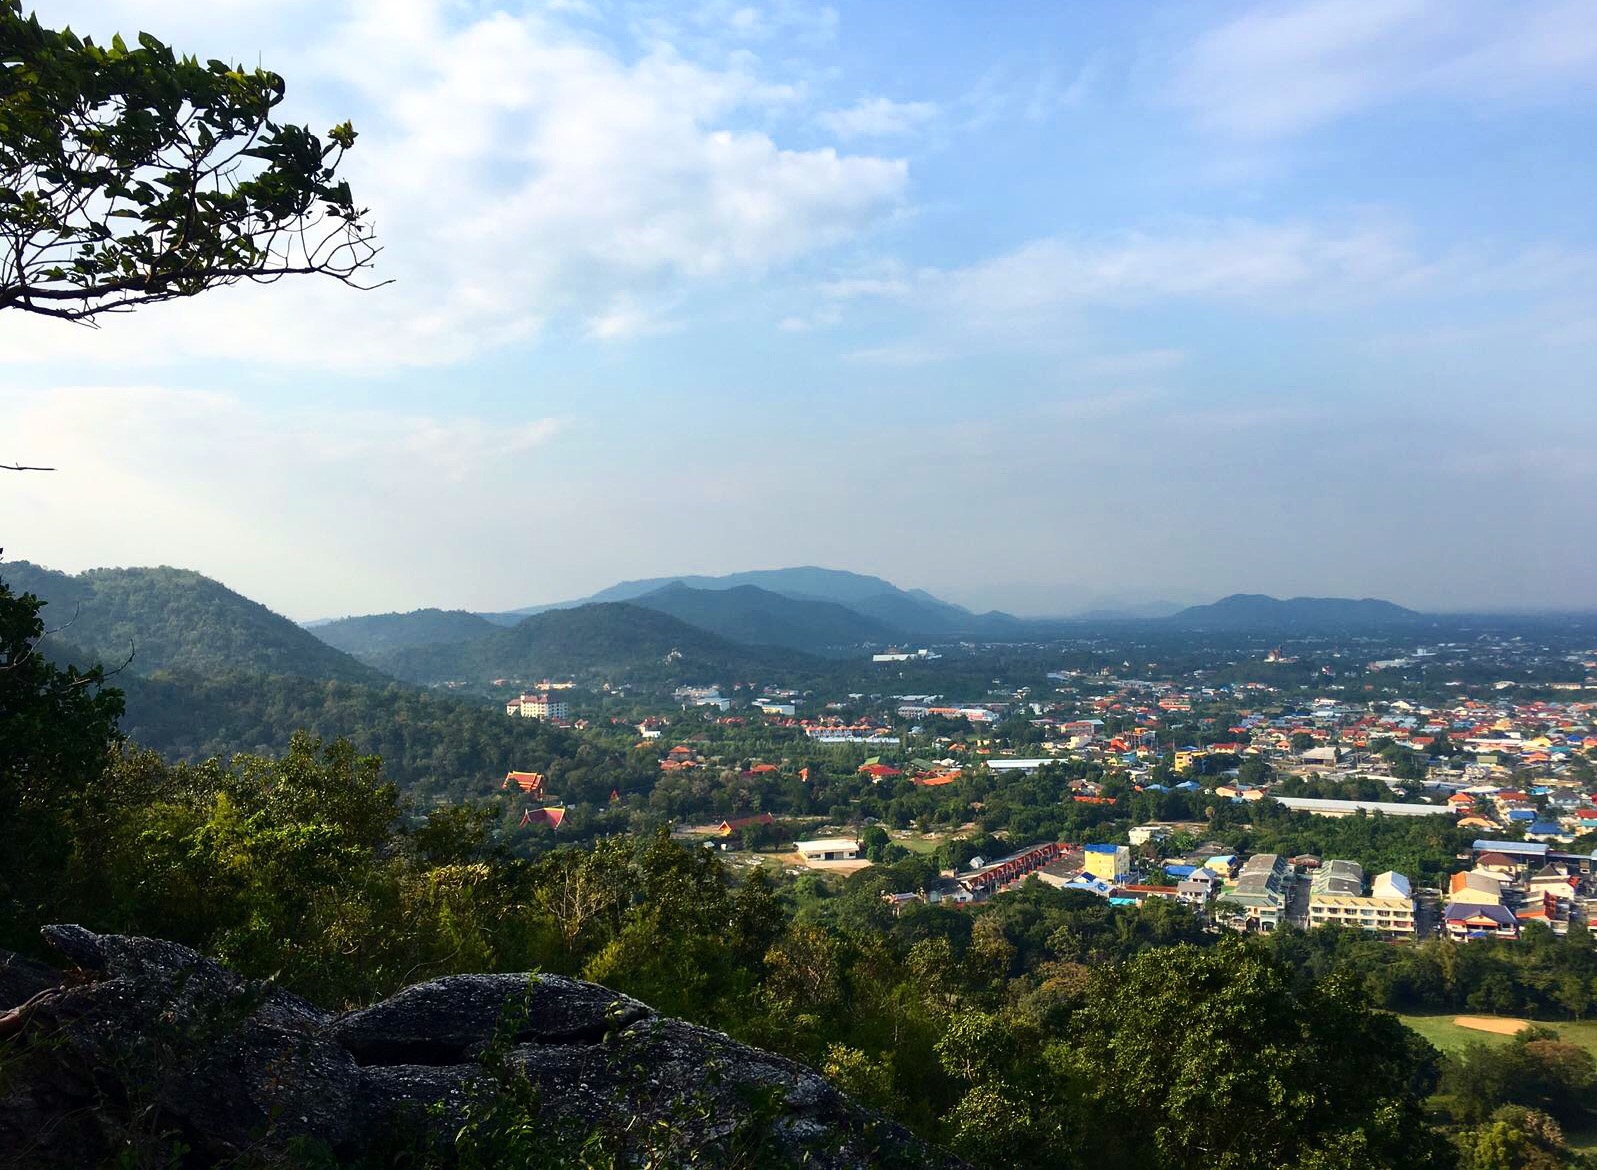 Top 5 activities in hua hin thailand copperpink hua hin is not the first place that comes to mind when dreaming of thailand as a holiday destination usually i hear people speak of bangkok phuket and the solutioingenieria Choice Image